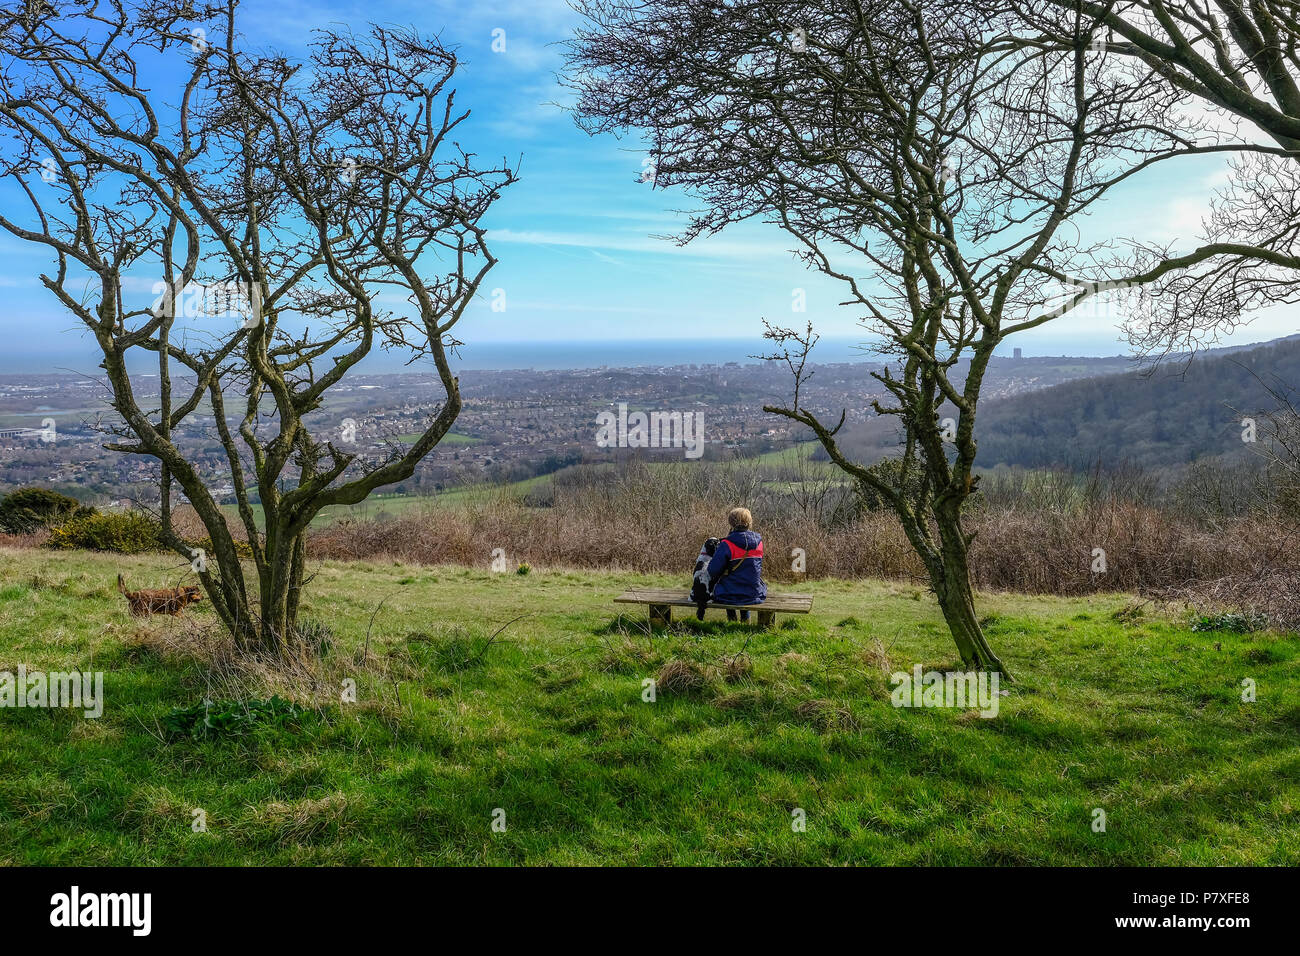 Rear View of a lady sitting contempating on a bench in the South Downs National Park.  Admiring the view and framed by trees. - Stock Image